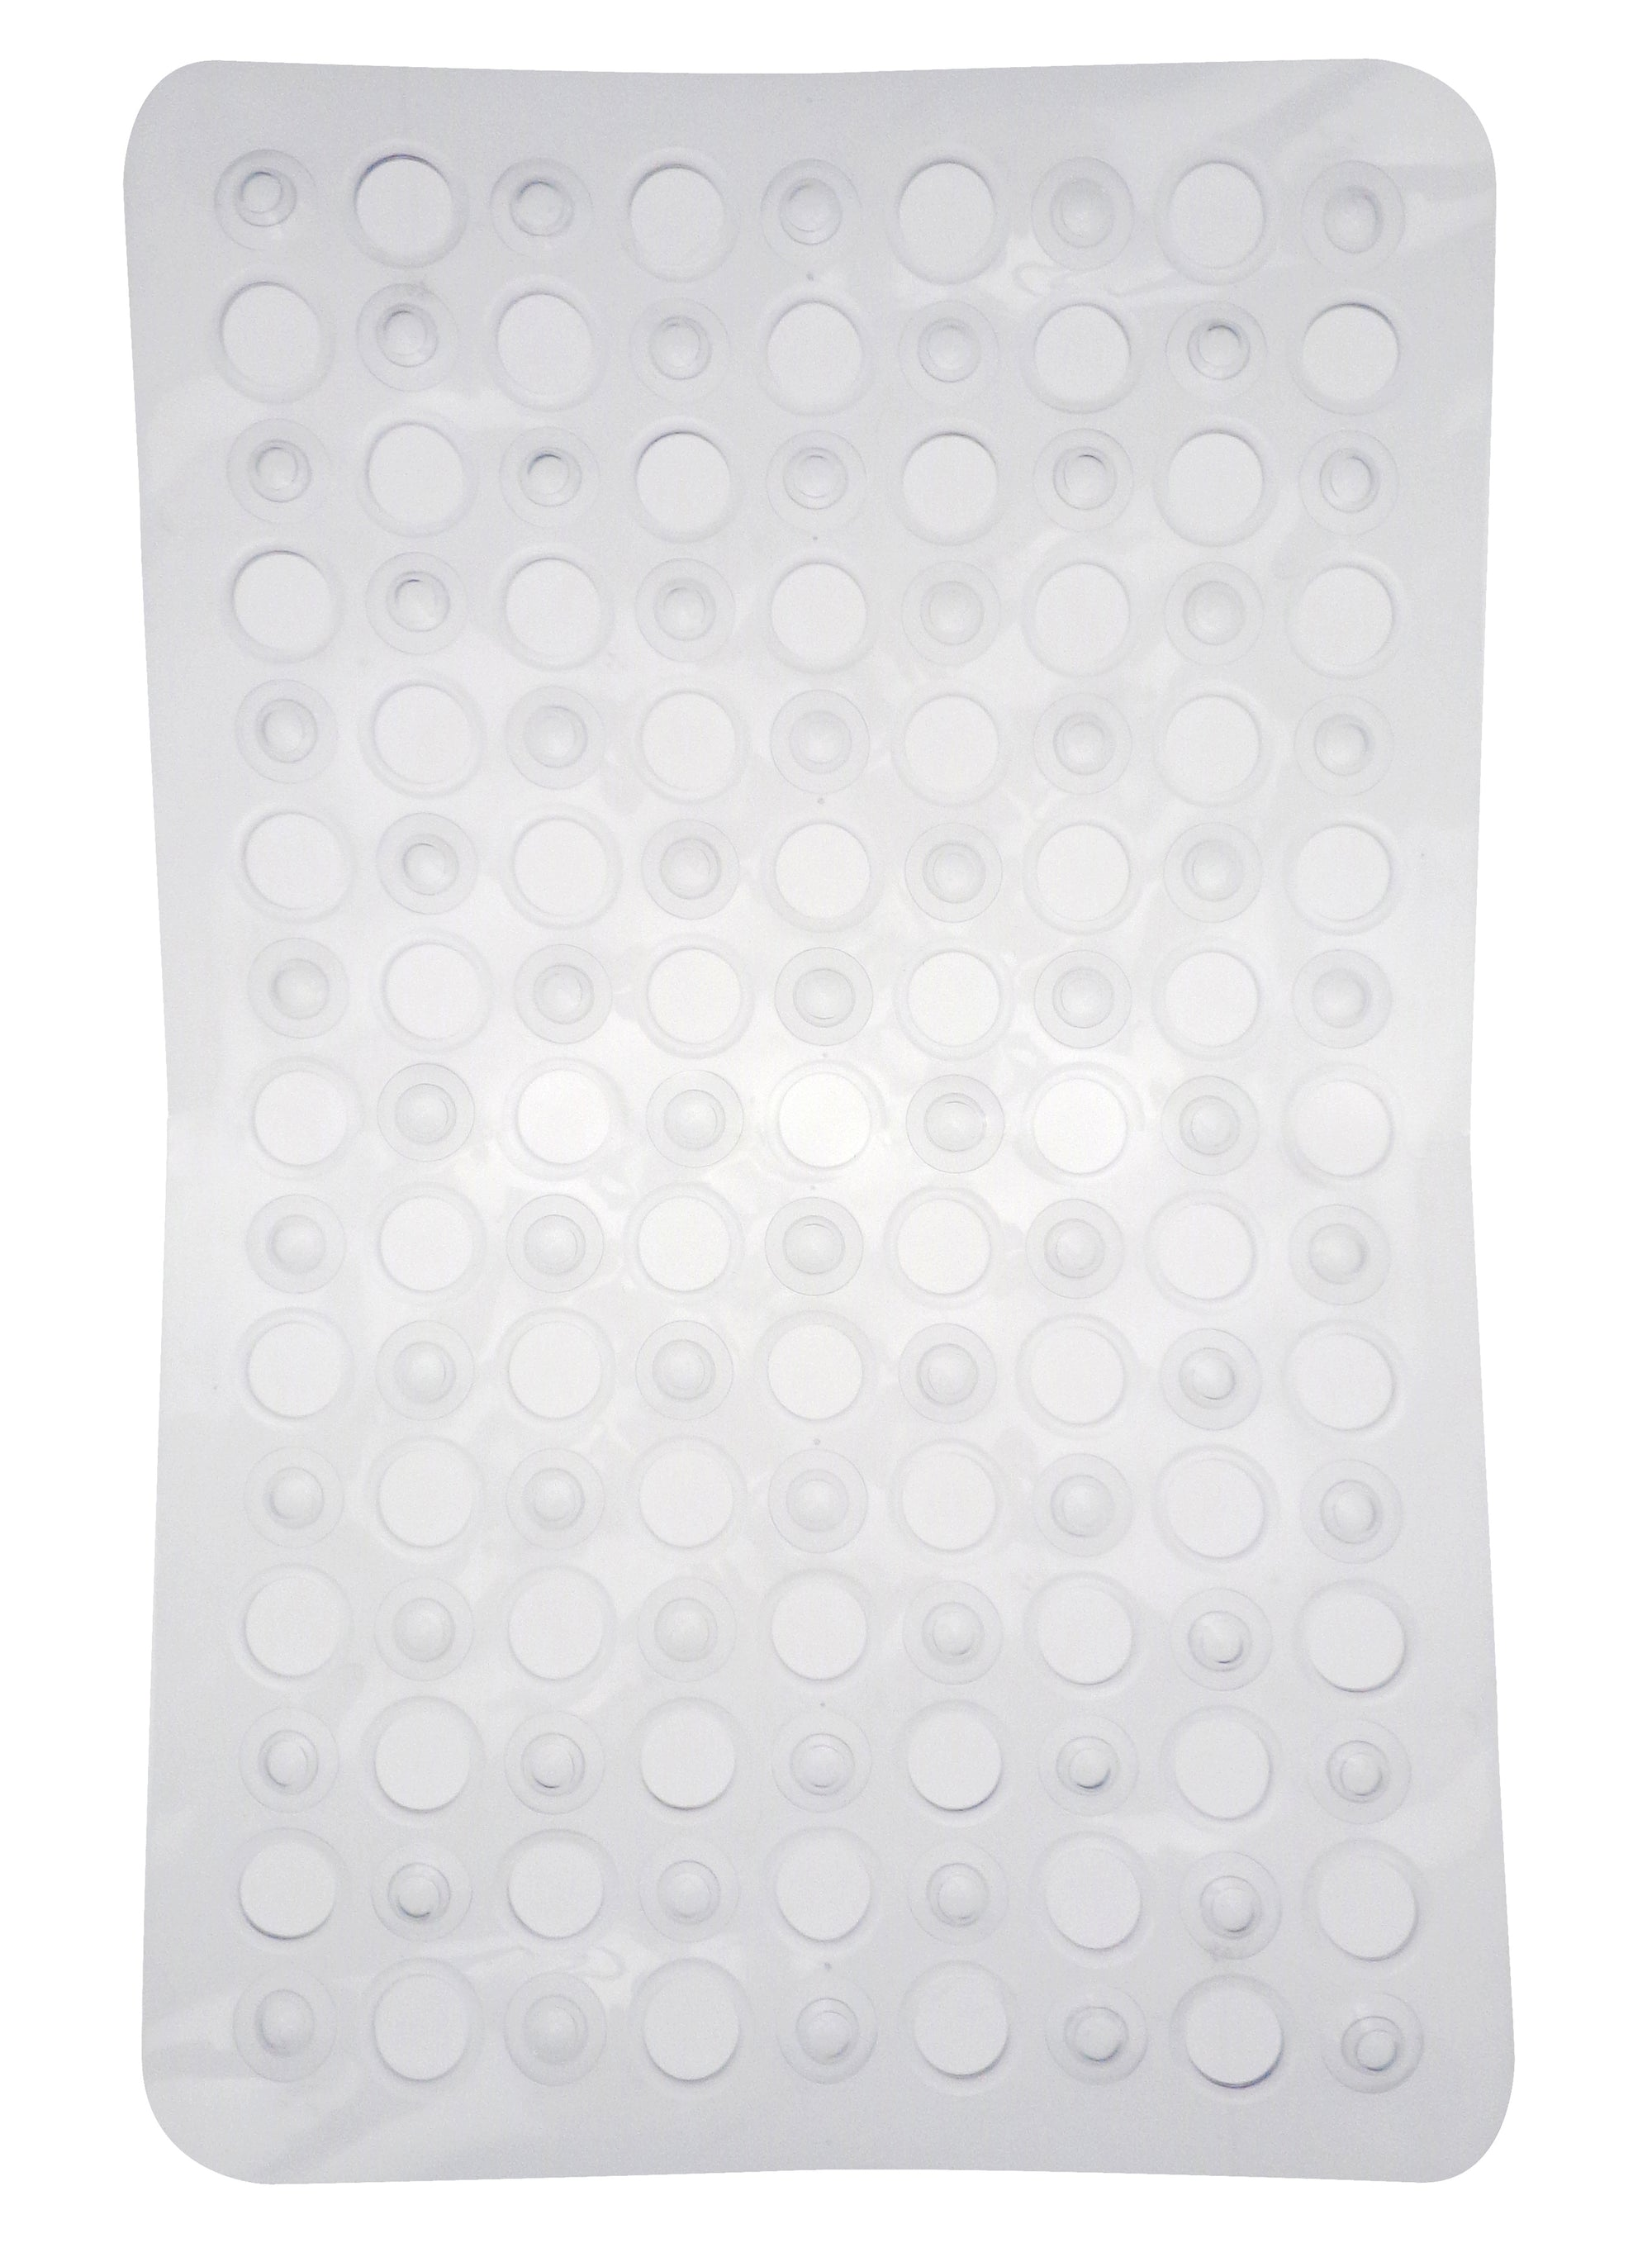 PVC Anti Slip Bath Shower Mat